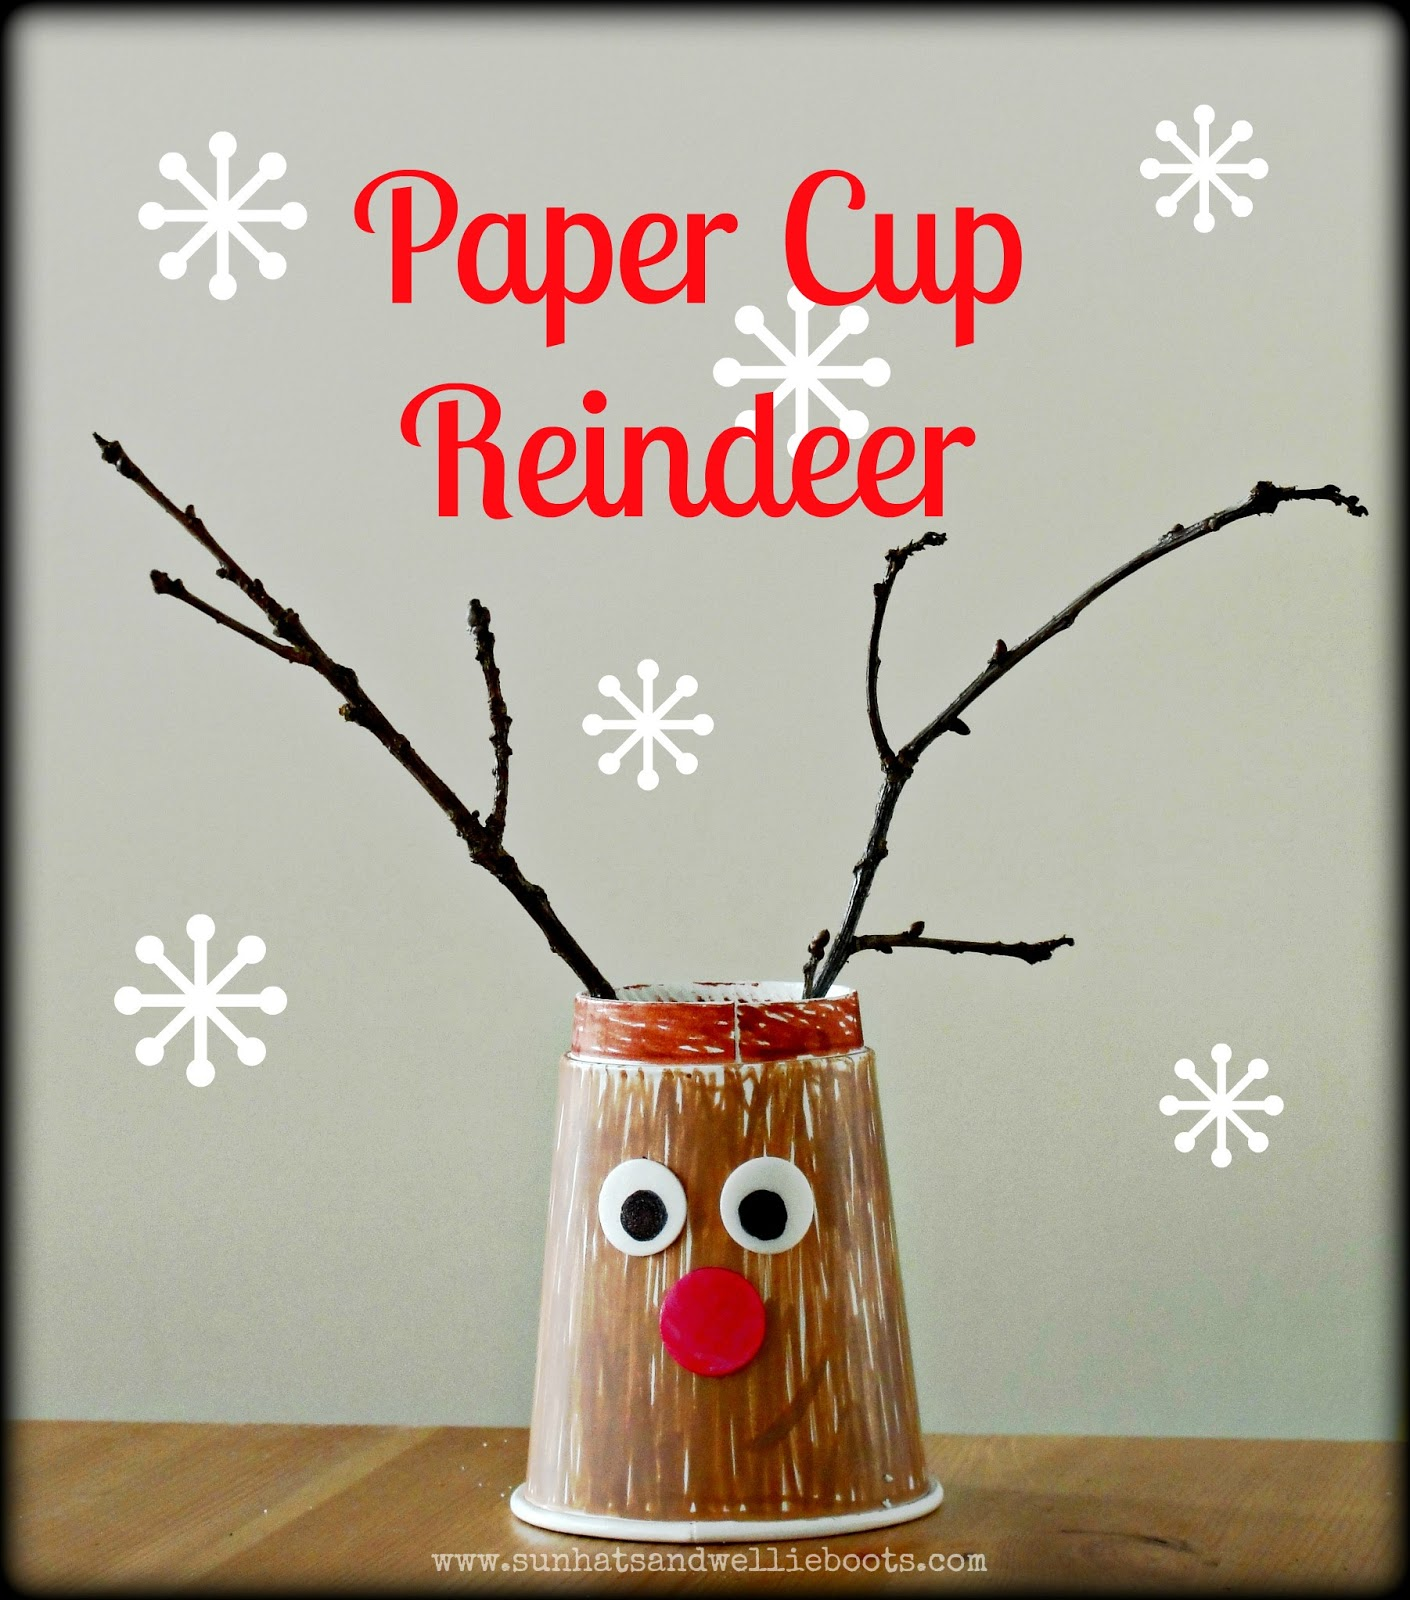 After sharing our Reindeer Tree yesterday I had to show you these paper cup reindeers. Again so simple u0026 fun for children to create u0026 they cost next to ...  sc 1 st  Sun Hats u0026 Wellie Boots & Sun Hats u0026 Wellie Boots: Paper Cup Reindeers